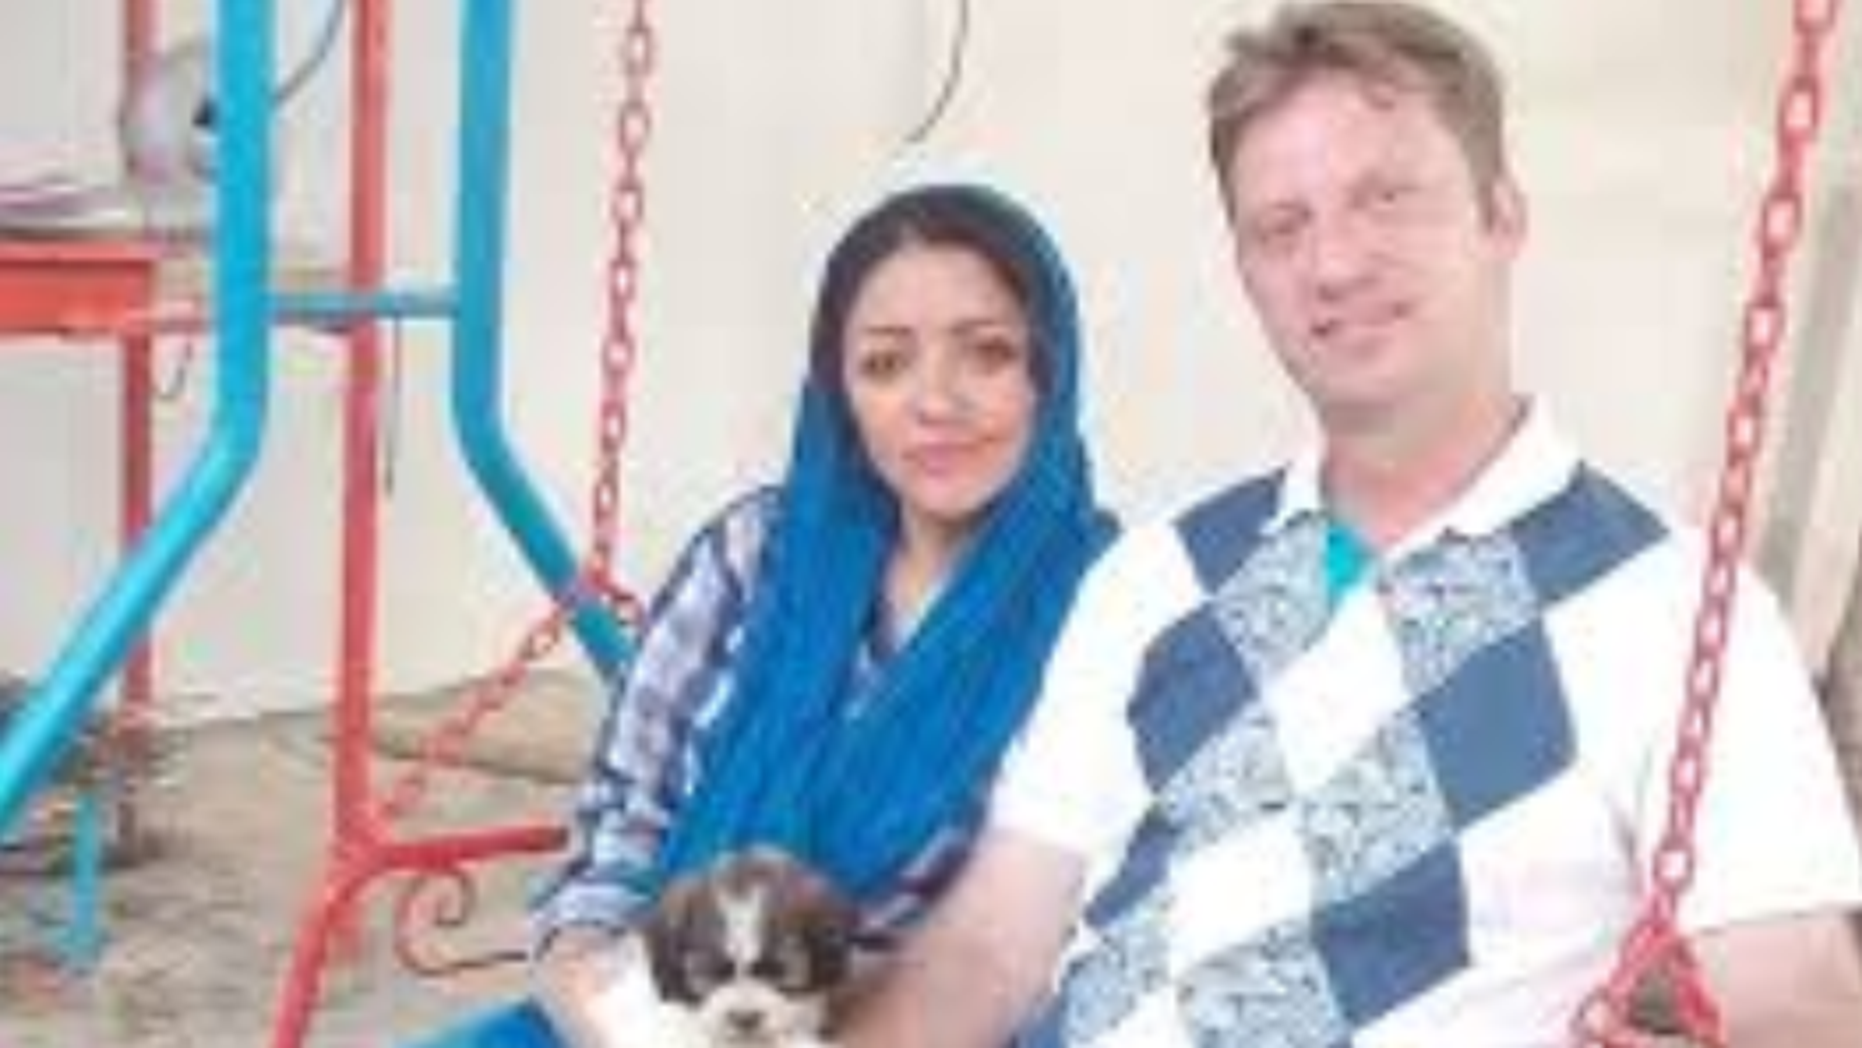 American Navy veteran held in Iranian prison since July on unspecified charges